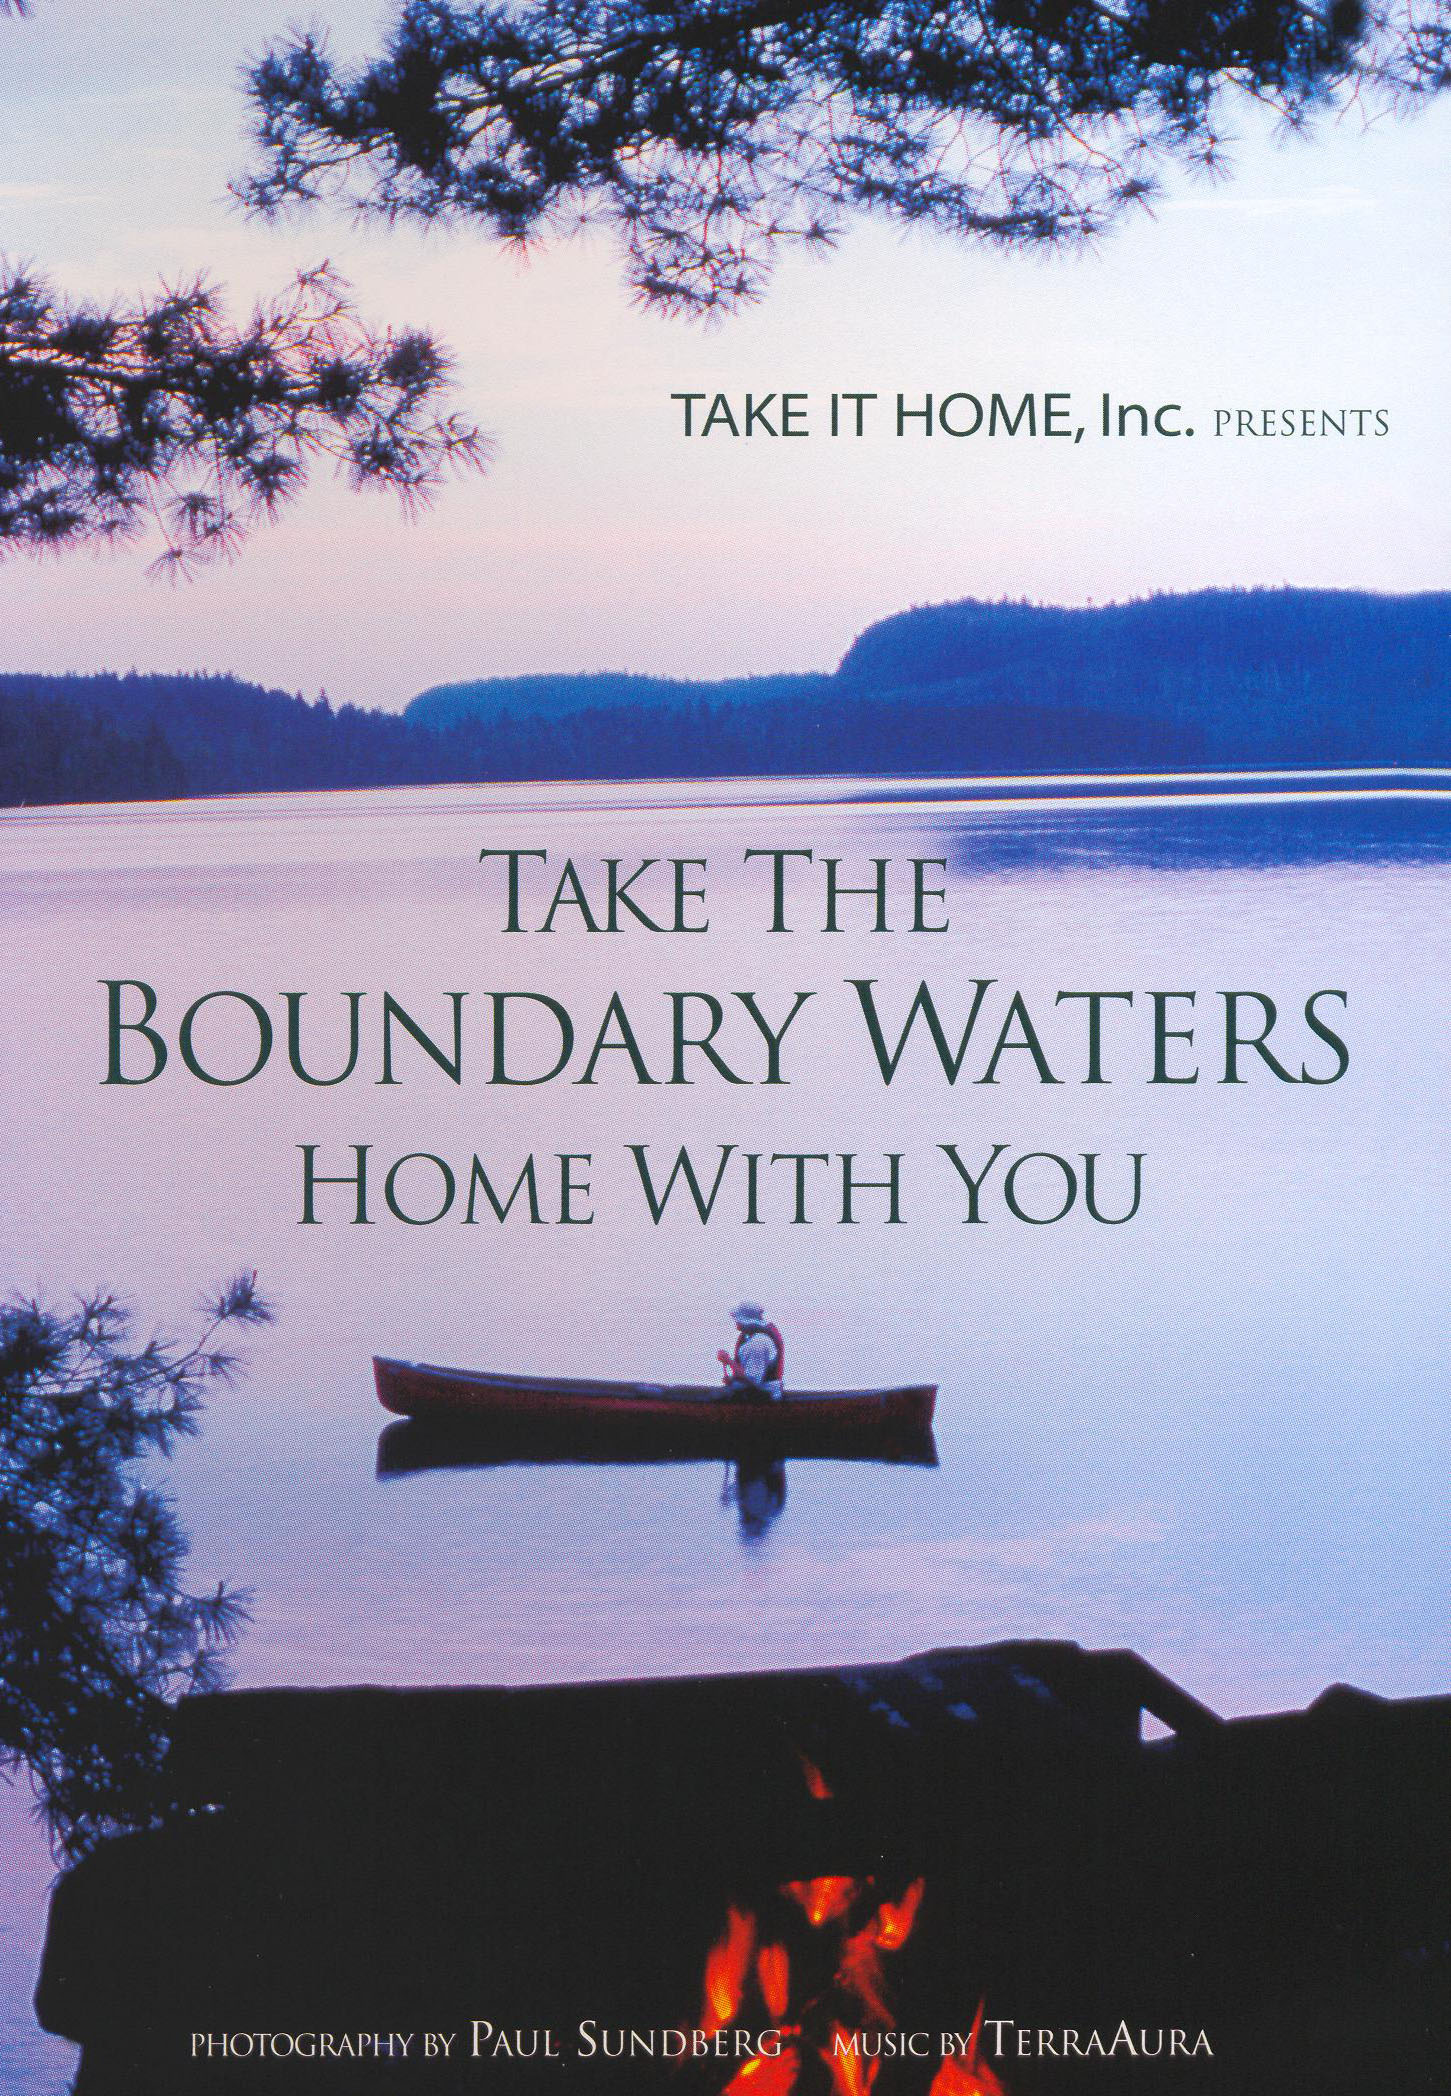 Take the Boundary Waters Home with You